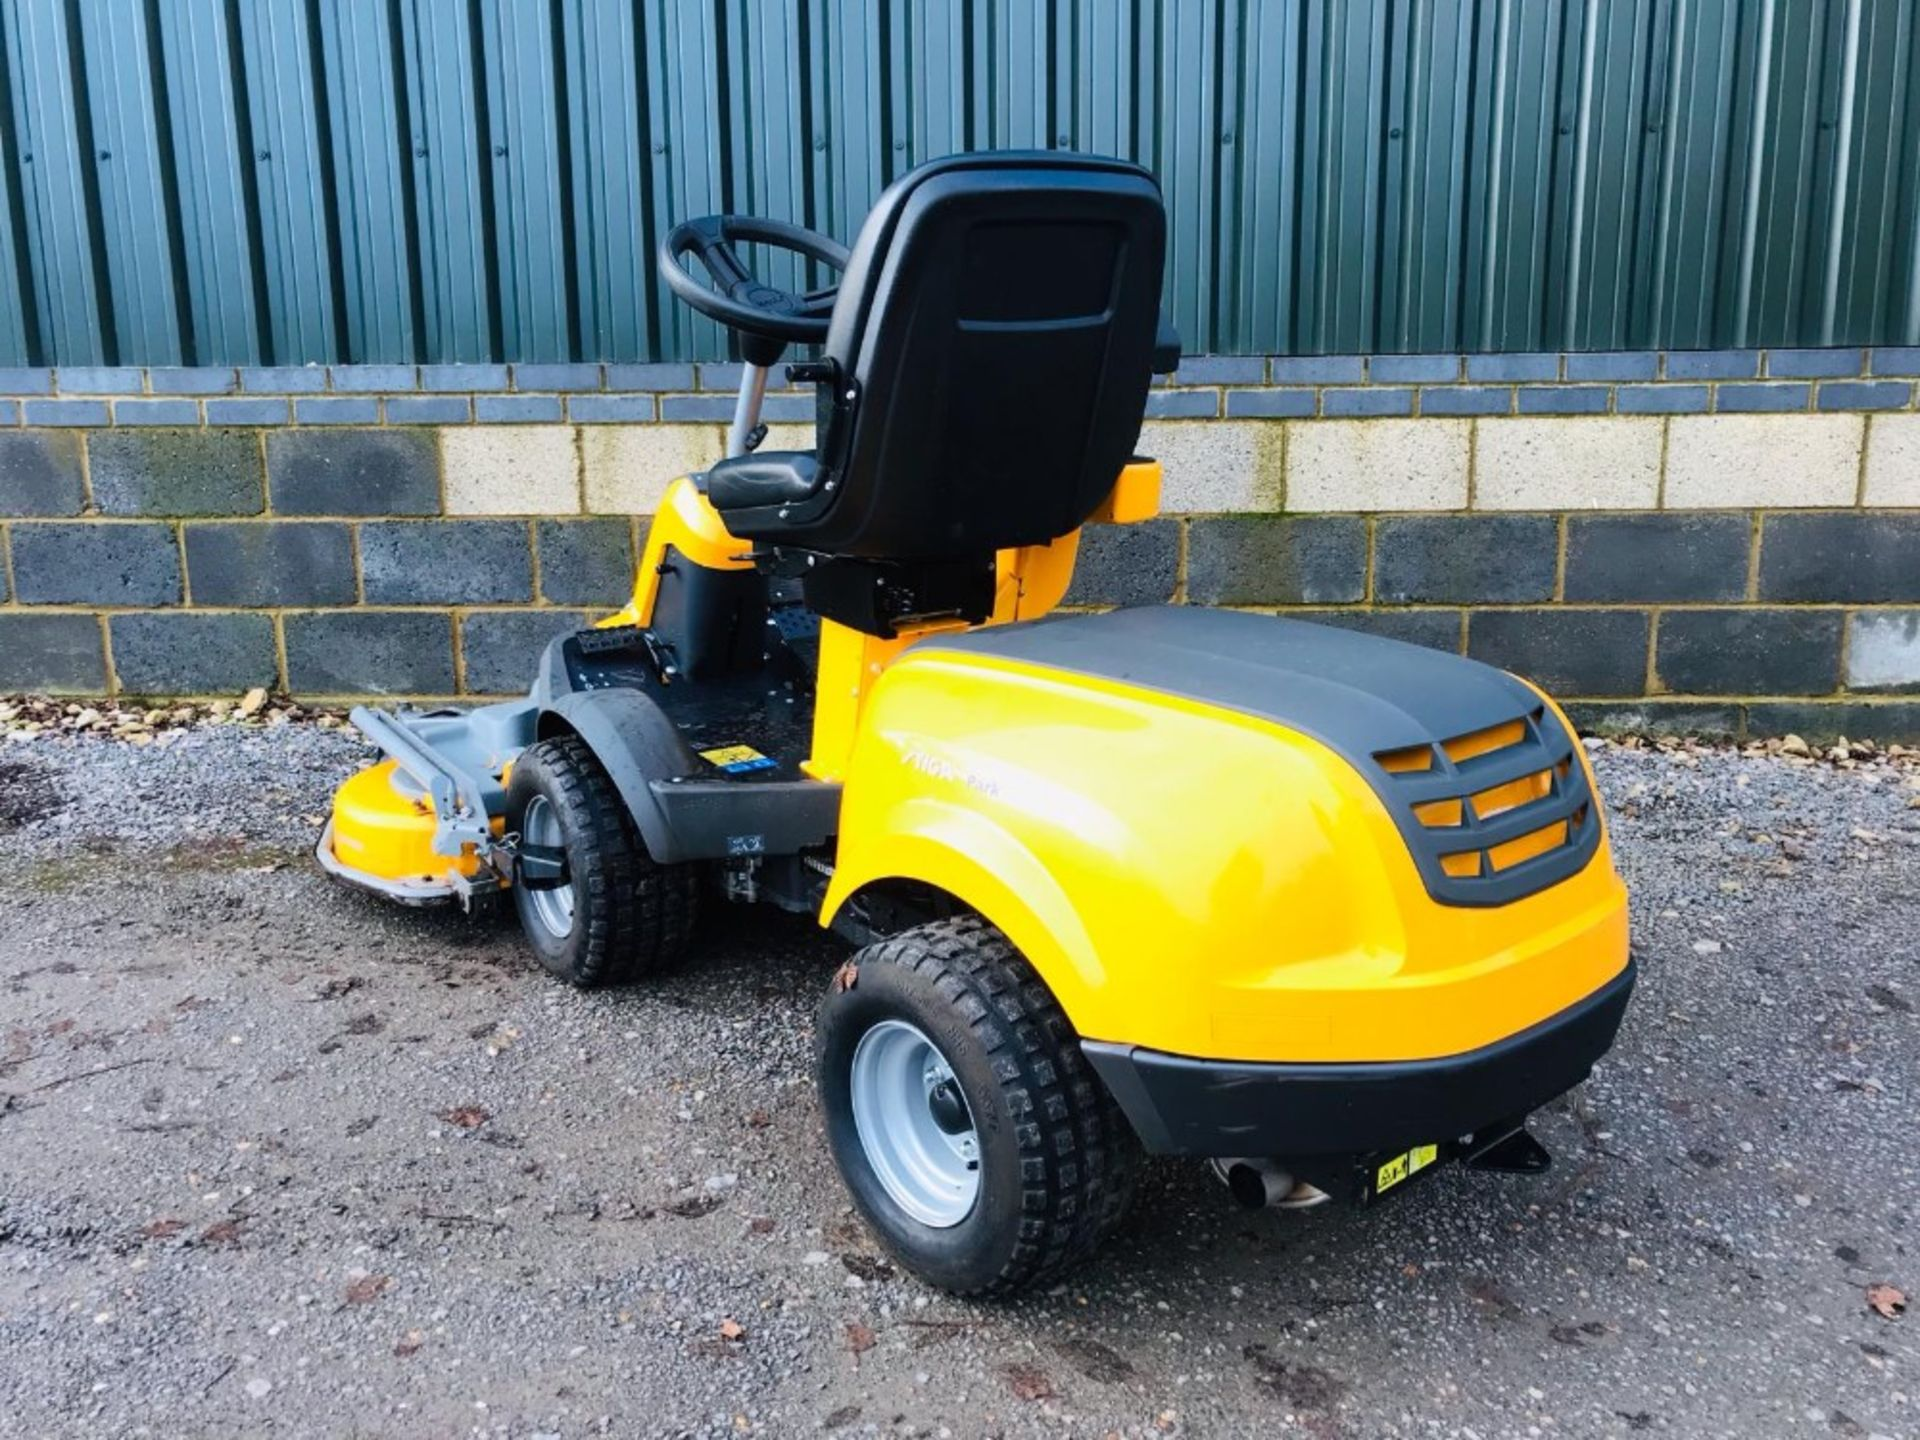 Lot 96 - STIGA 540L 4WD RIDE ON MOWER YEAR 2017. 1.25M COMBI DECK FITTED WHEN TESTED WAS SEEN TO RUN, DRIVE